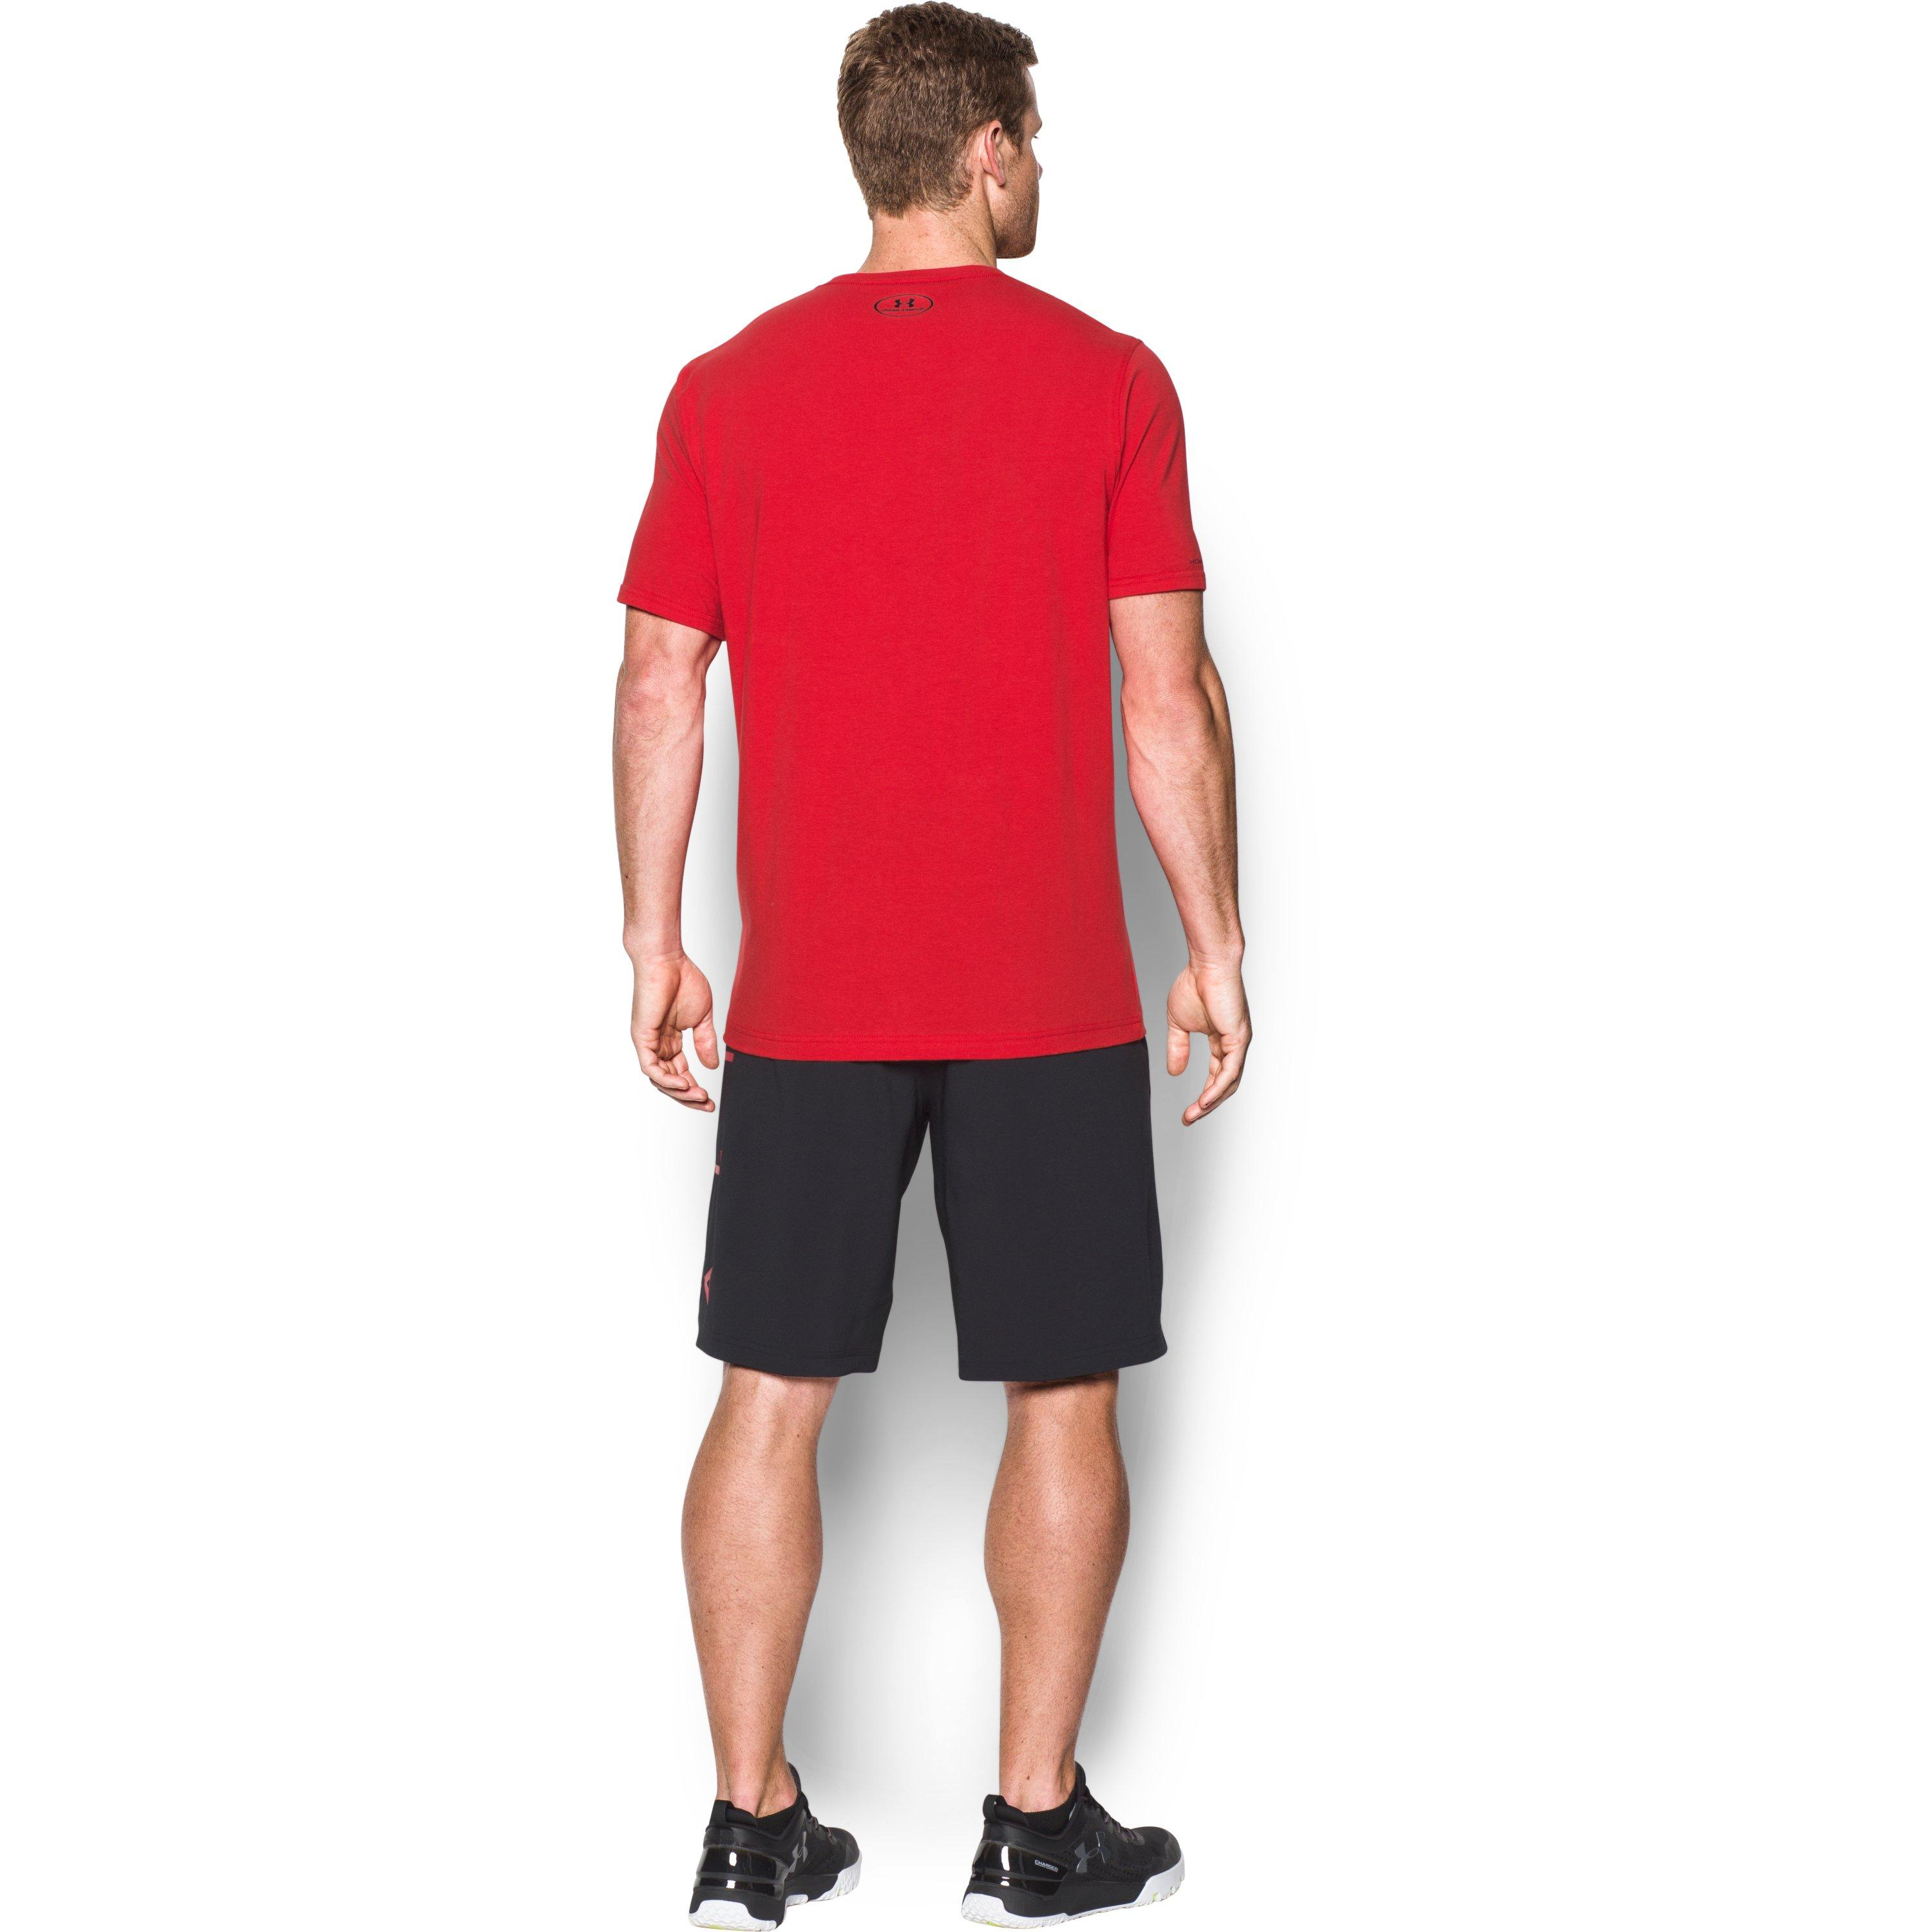 6a18909e Lyst - Under Armour Men's Ua X Muhammad Ali Sportstyle T-shirt in ...